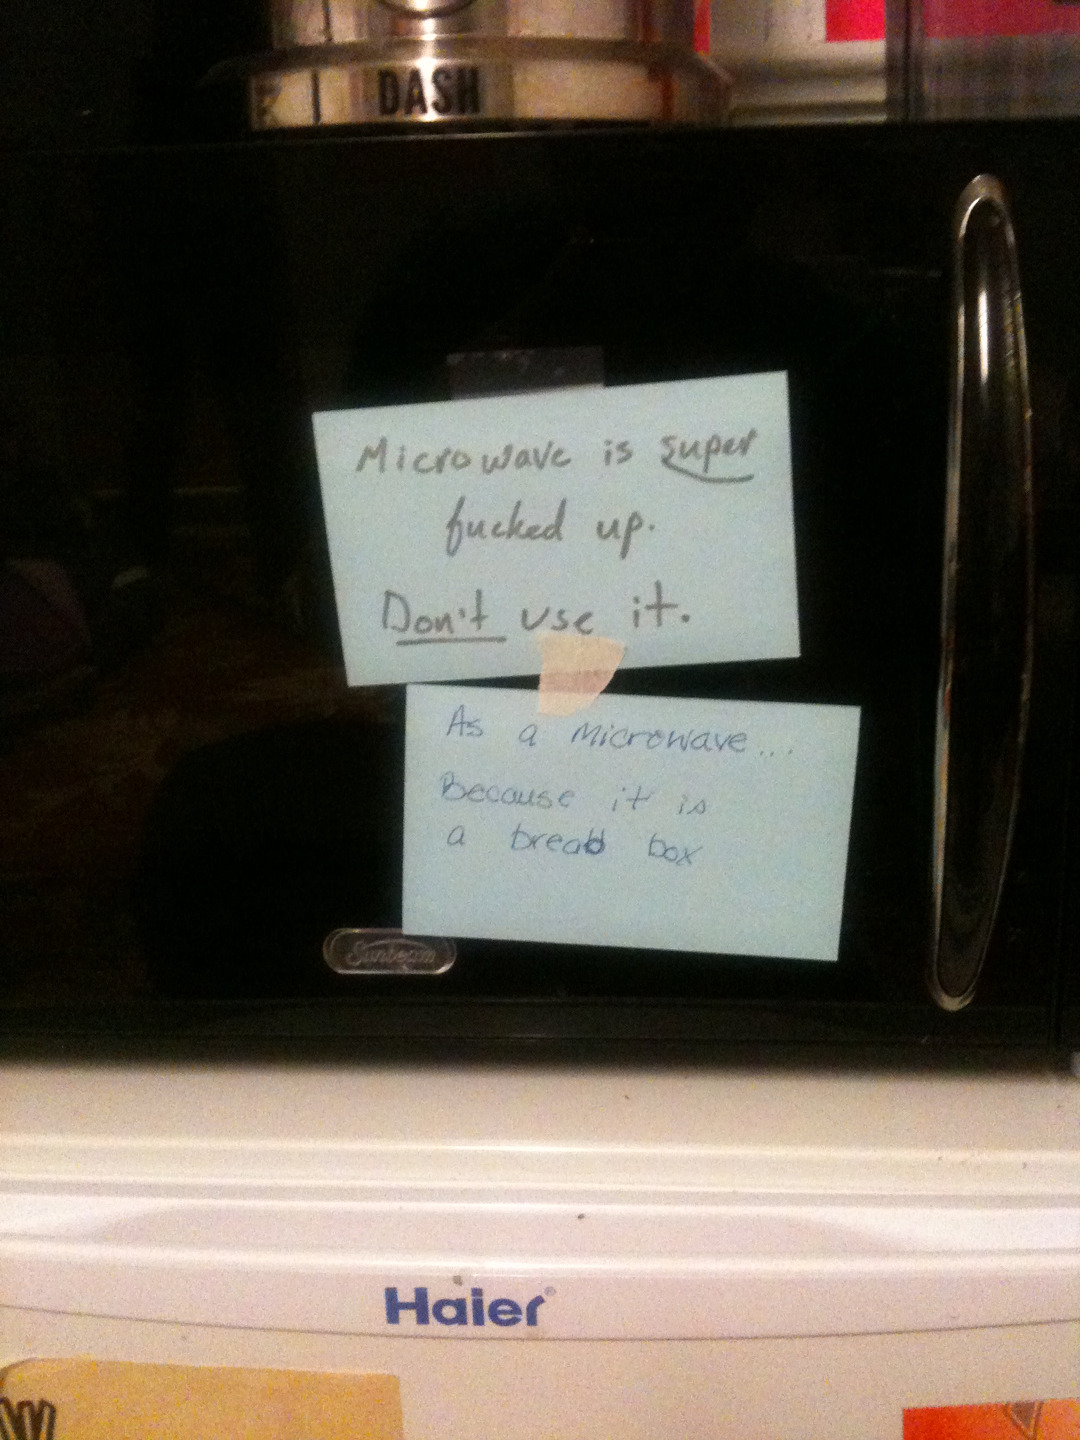 **UPDATE** Our broken microwave is now sporting a new sign claiming its new occupation as a bread box